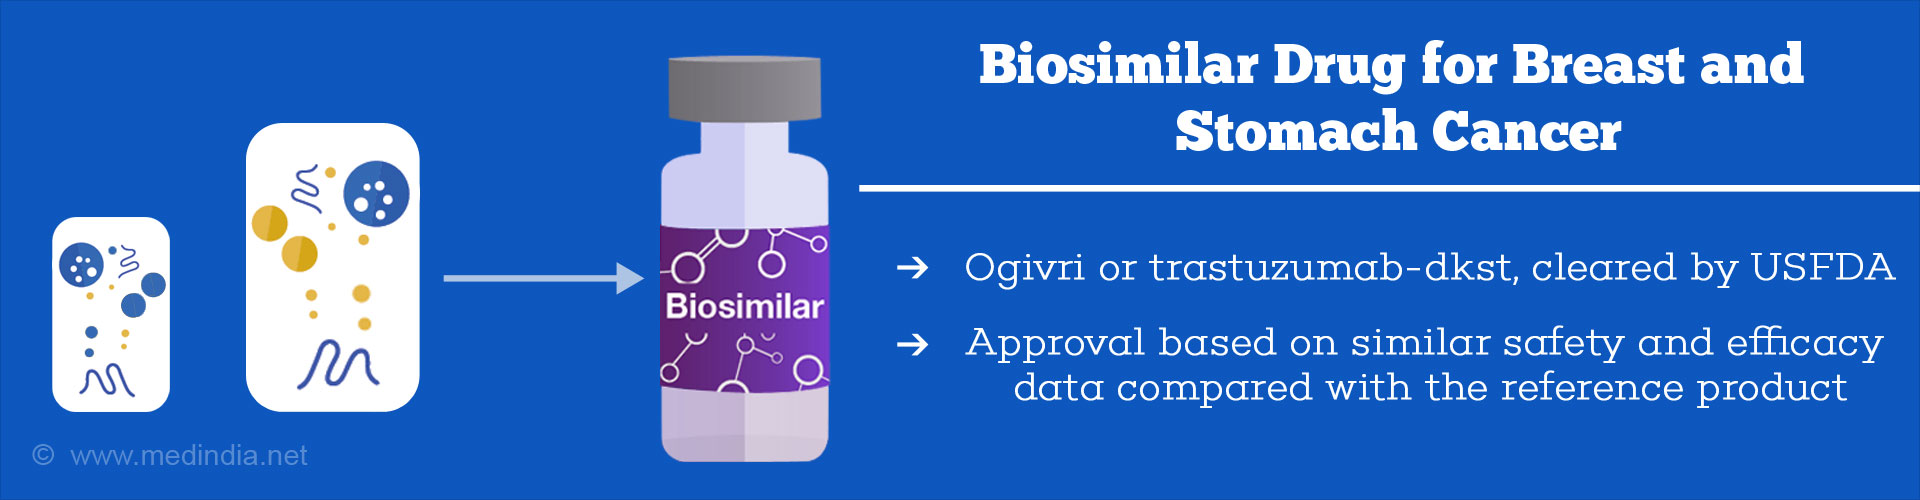 Biosimilar to Trastuzumab Approved for Breast or Metastatic Stomach Cancer